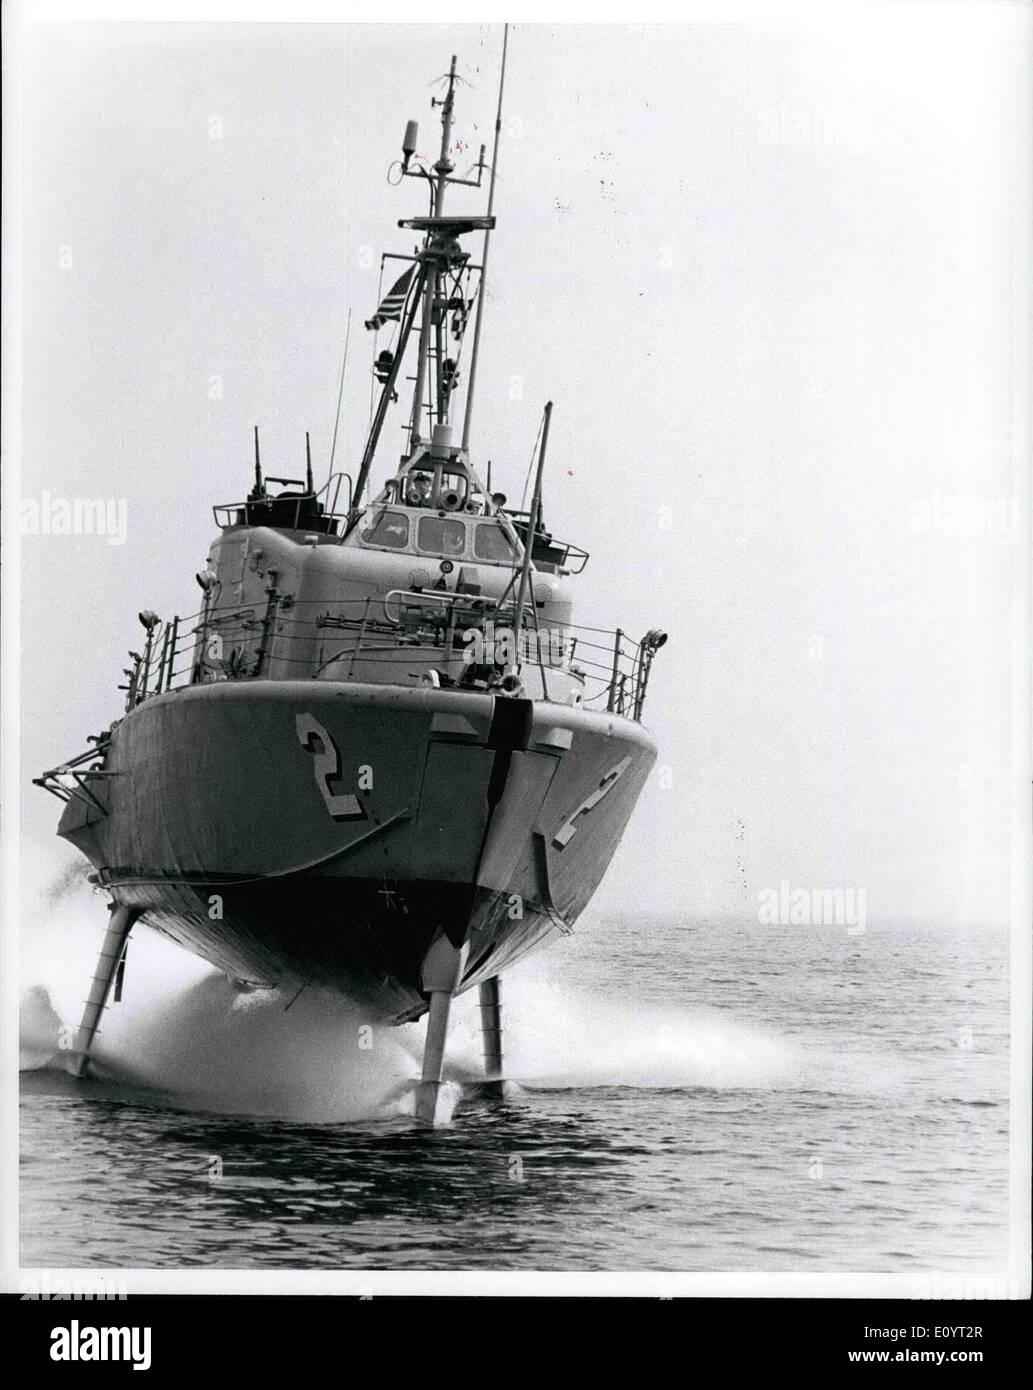 May 05, 1971 - Naval Photographic Center Naval Station, Washington D.C. 20390, Official U.S. Navy Photograph. The Hydrofoil Patrol Gunboat USS Tucumcari, Foilborne during a high speed run. - Stock Image